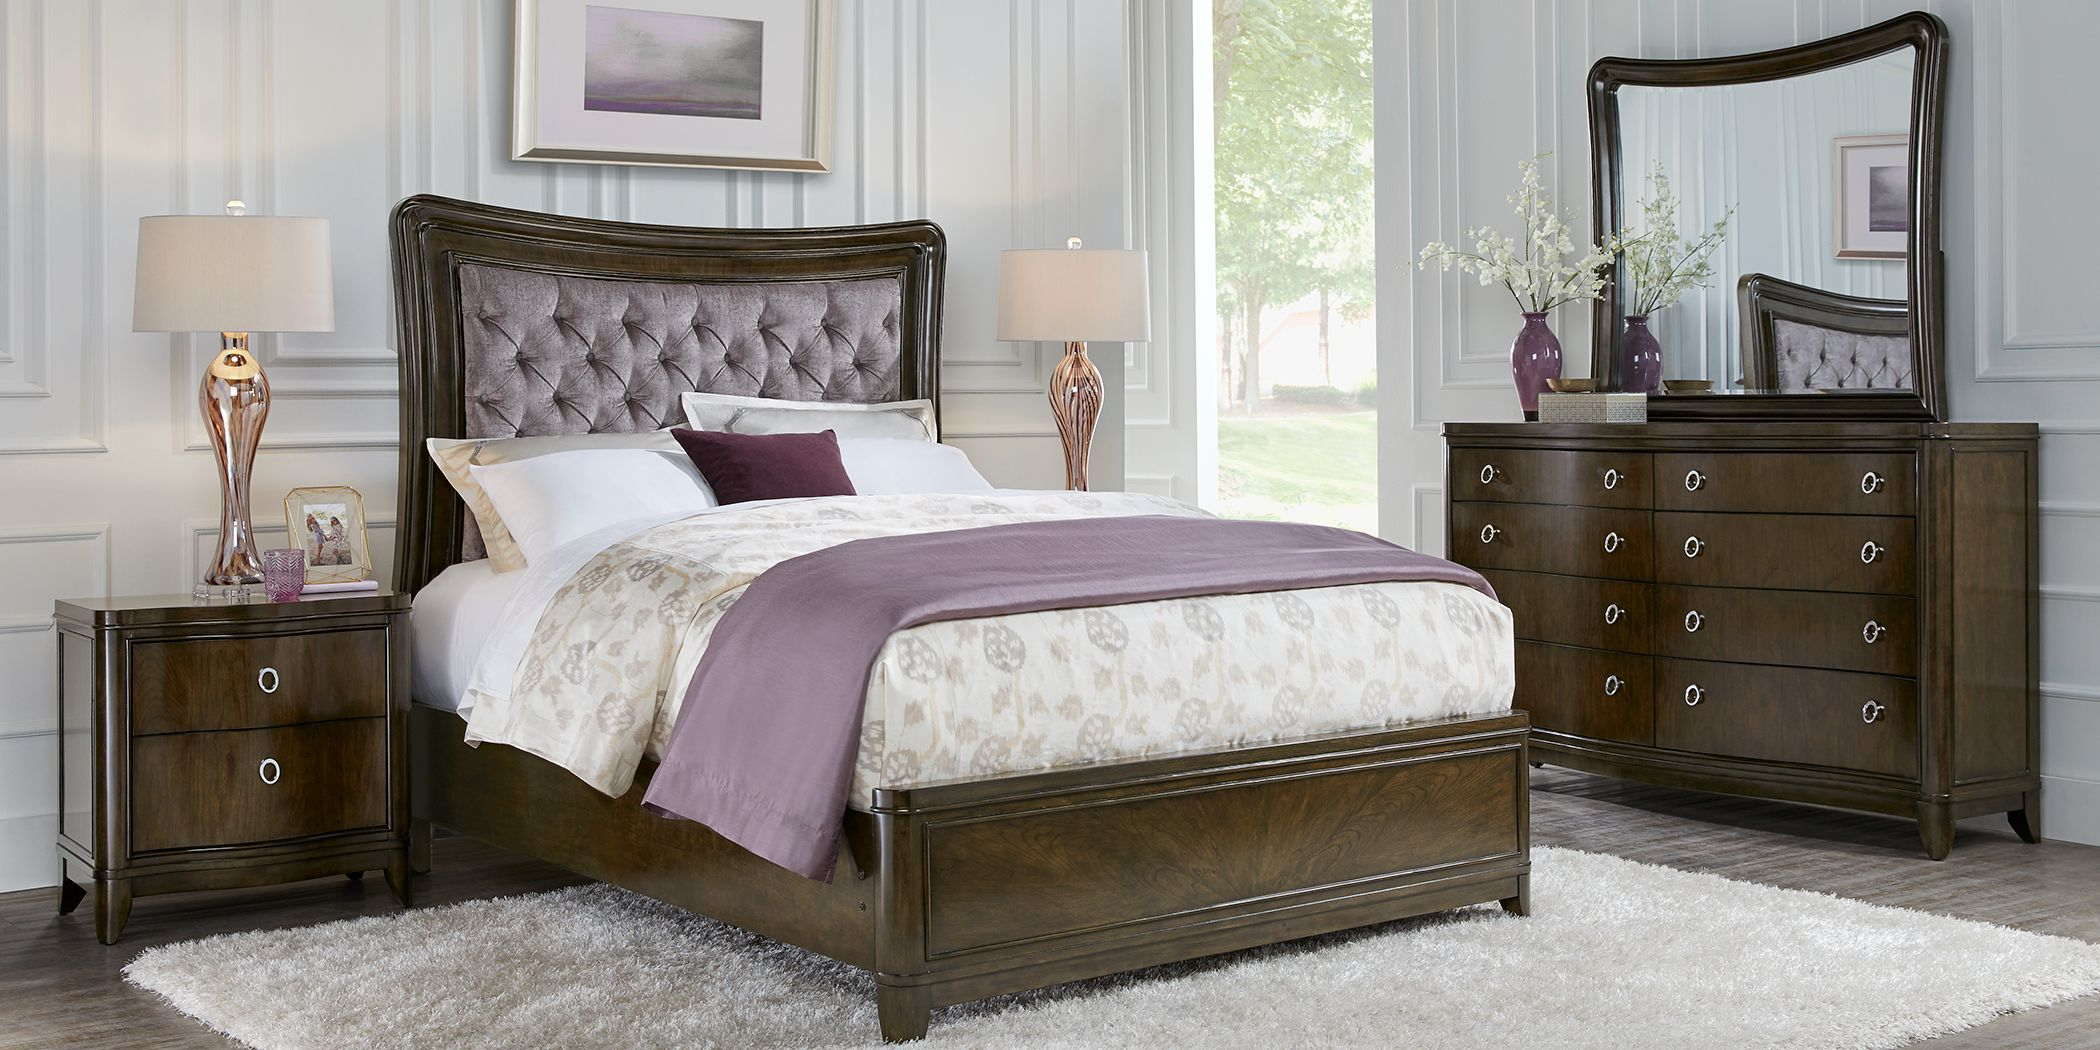 Cindy Crawford Home Chateau Brown 5 Pc King Upholstered Bedroom In